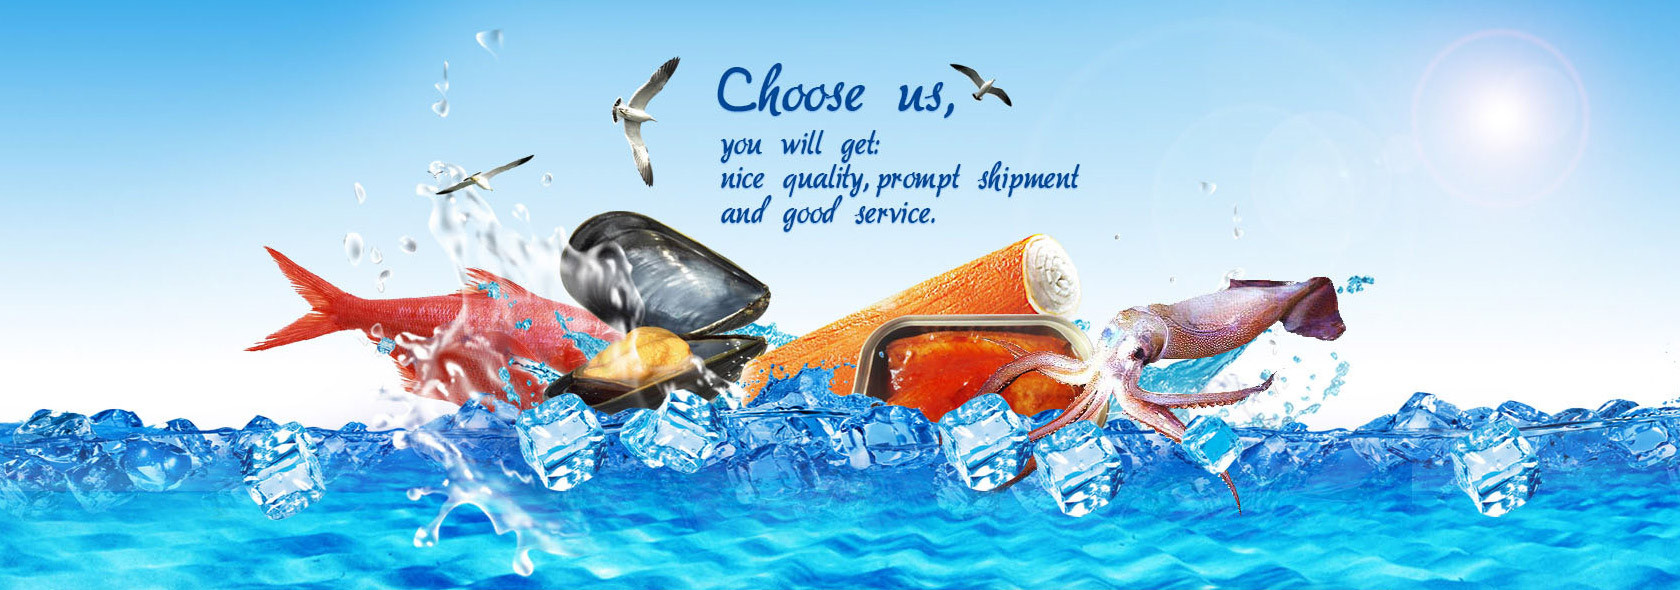 JS Seafood China Limited.